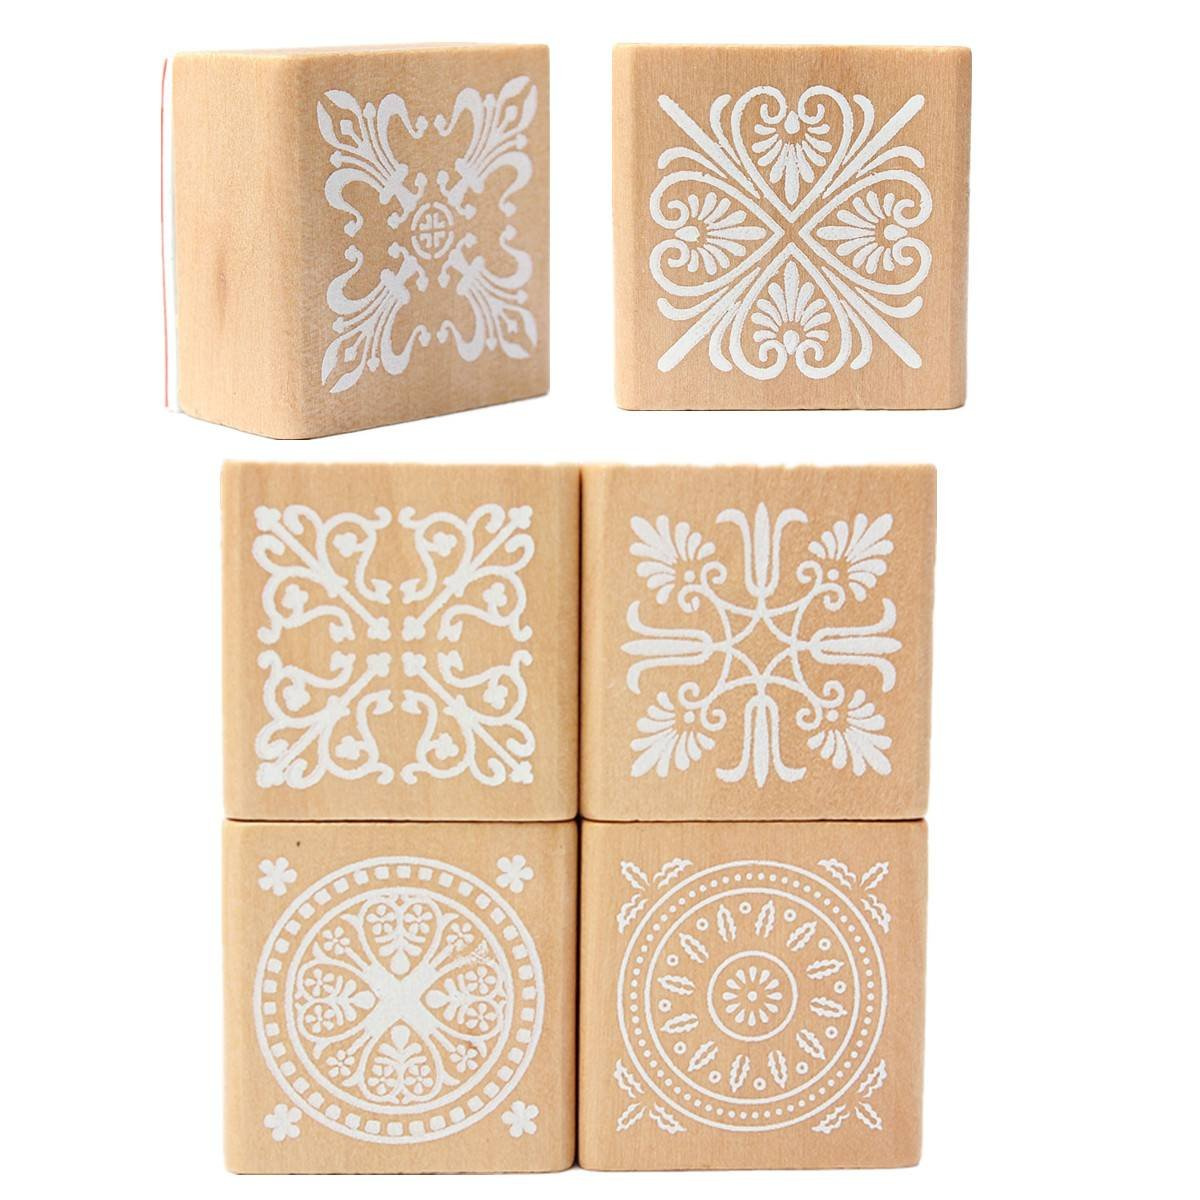 6 Assorted Wooden Stamp Rubber Seal Square Handwriting DIY Craft Flower Lace